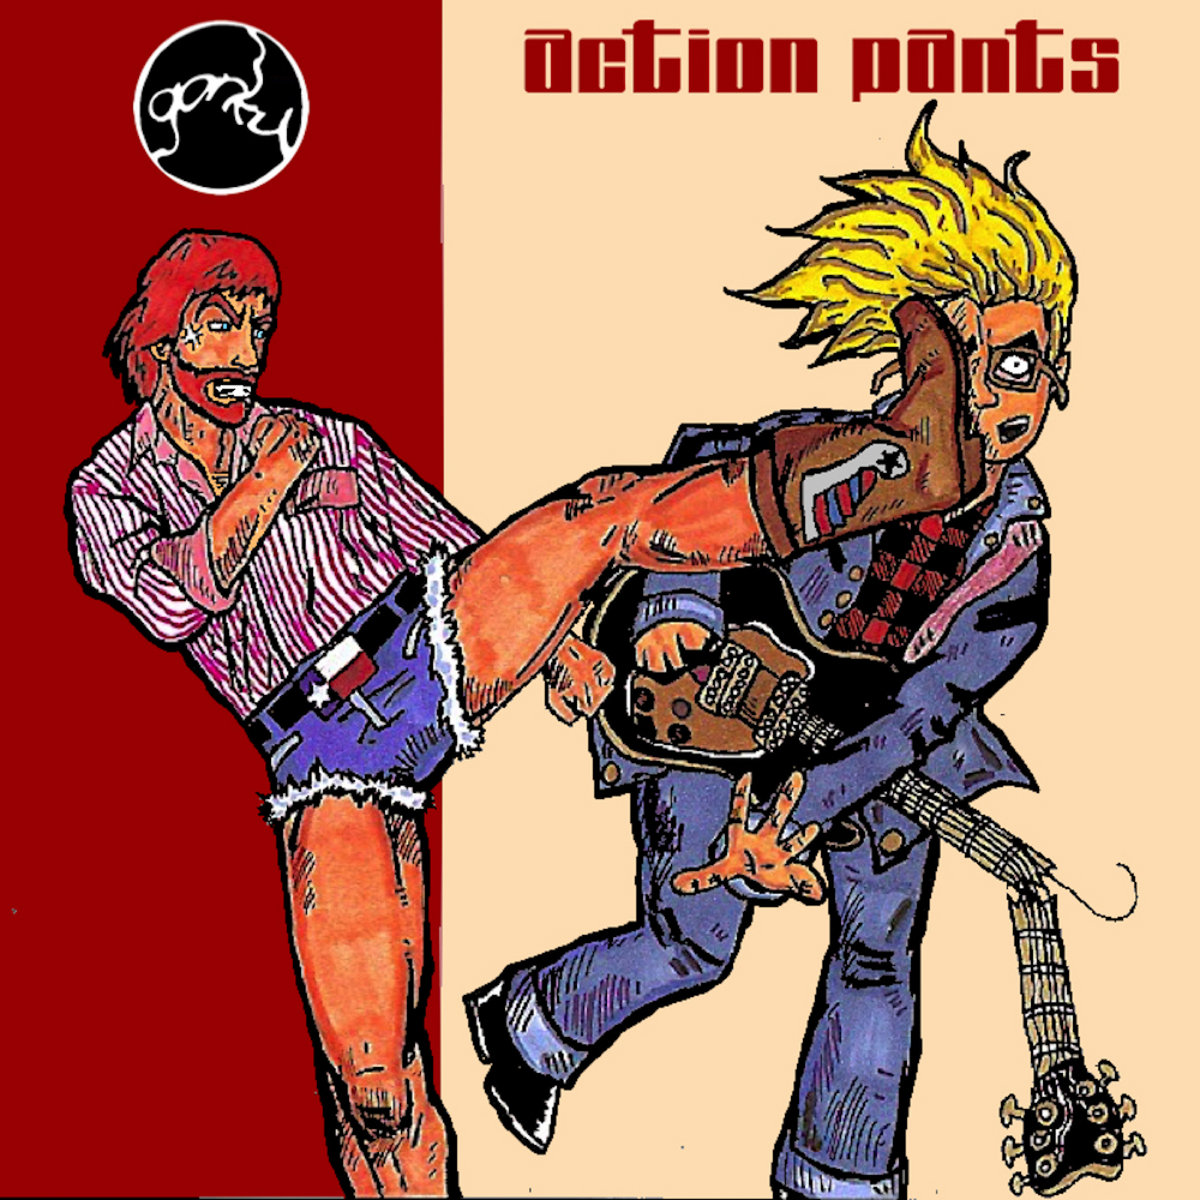 Action Pants by Gorky